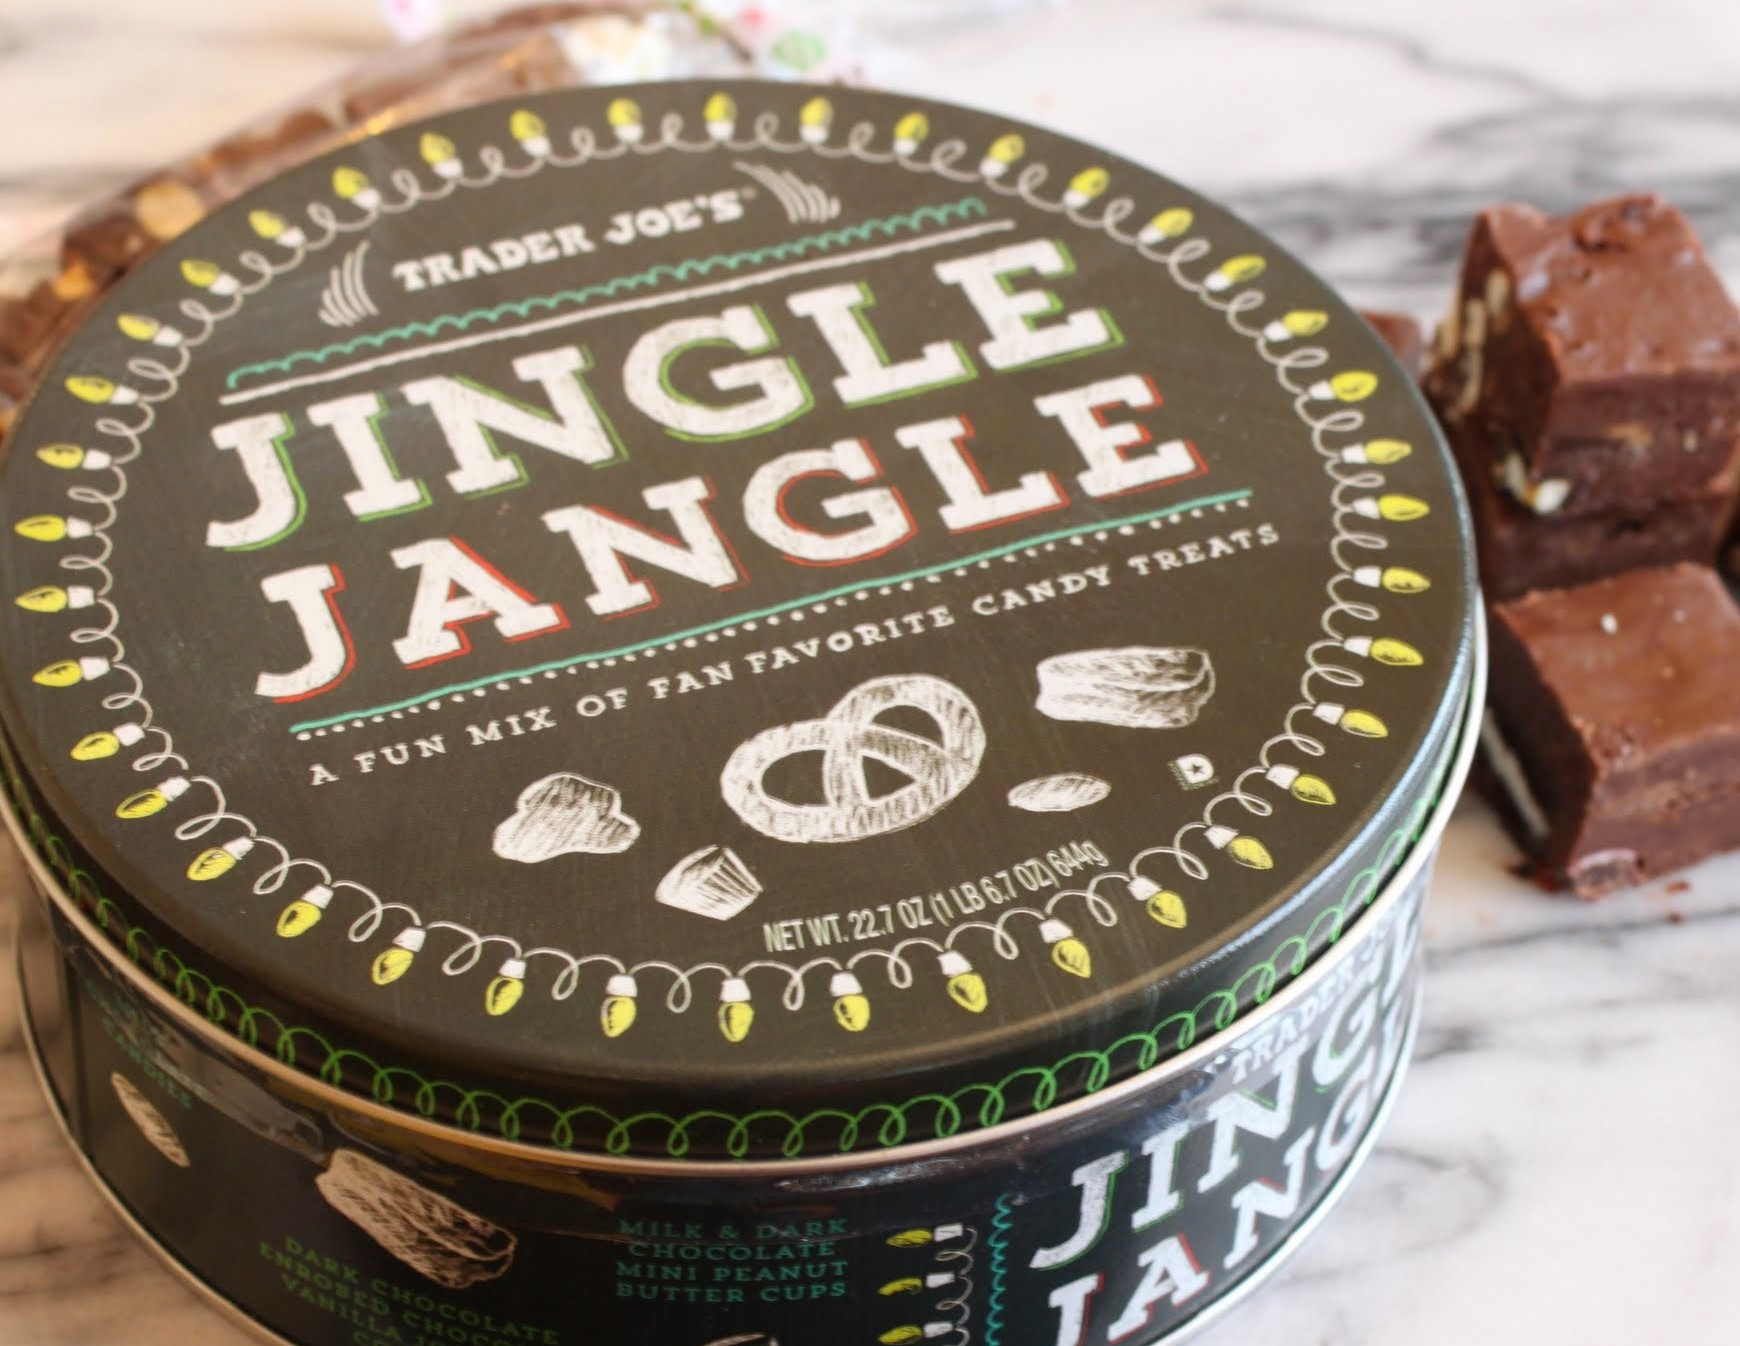 Jingle Jangle Fudge